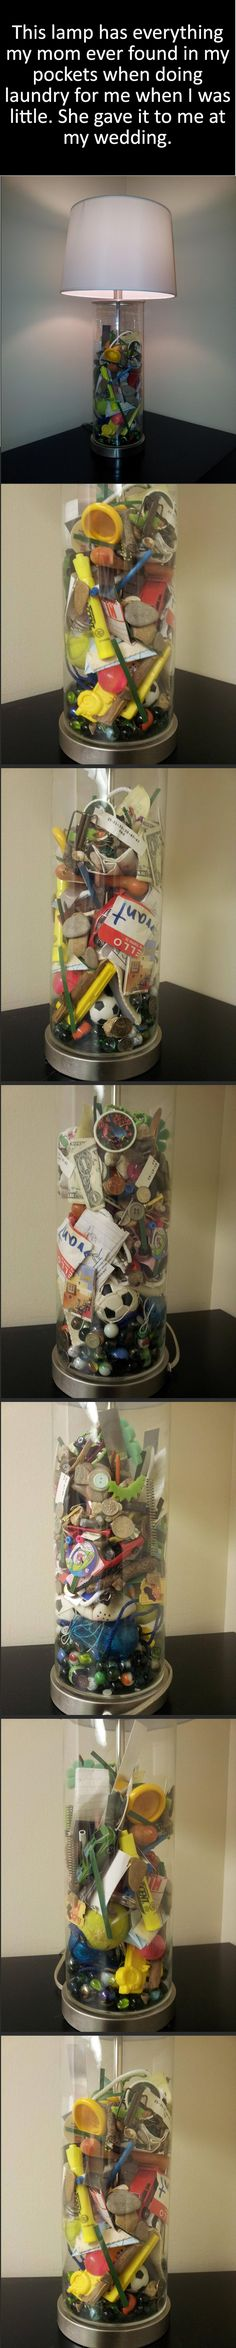 A mother saved all the things she found on his son pockets when doing the laundry. She gave him this lamp with all things found for his wedding.  Cute idea. I could see maybe doing a shadow box or something.